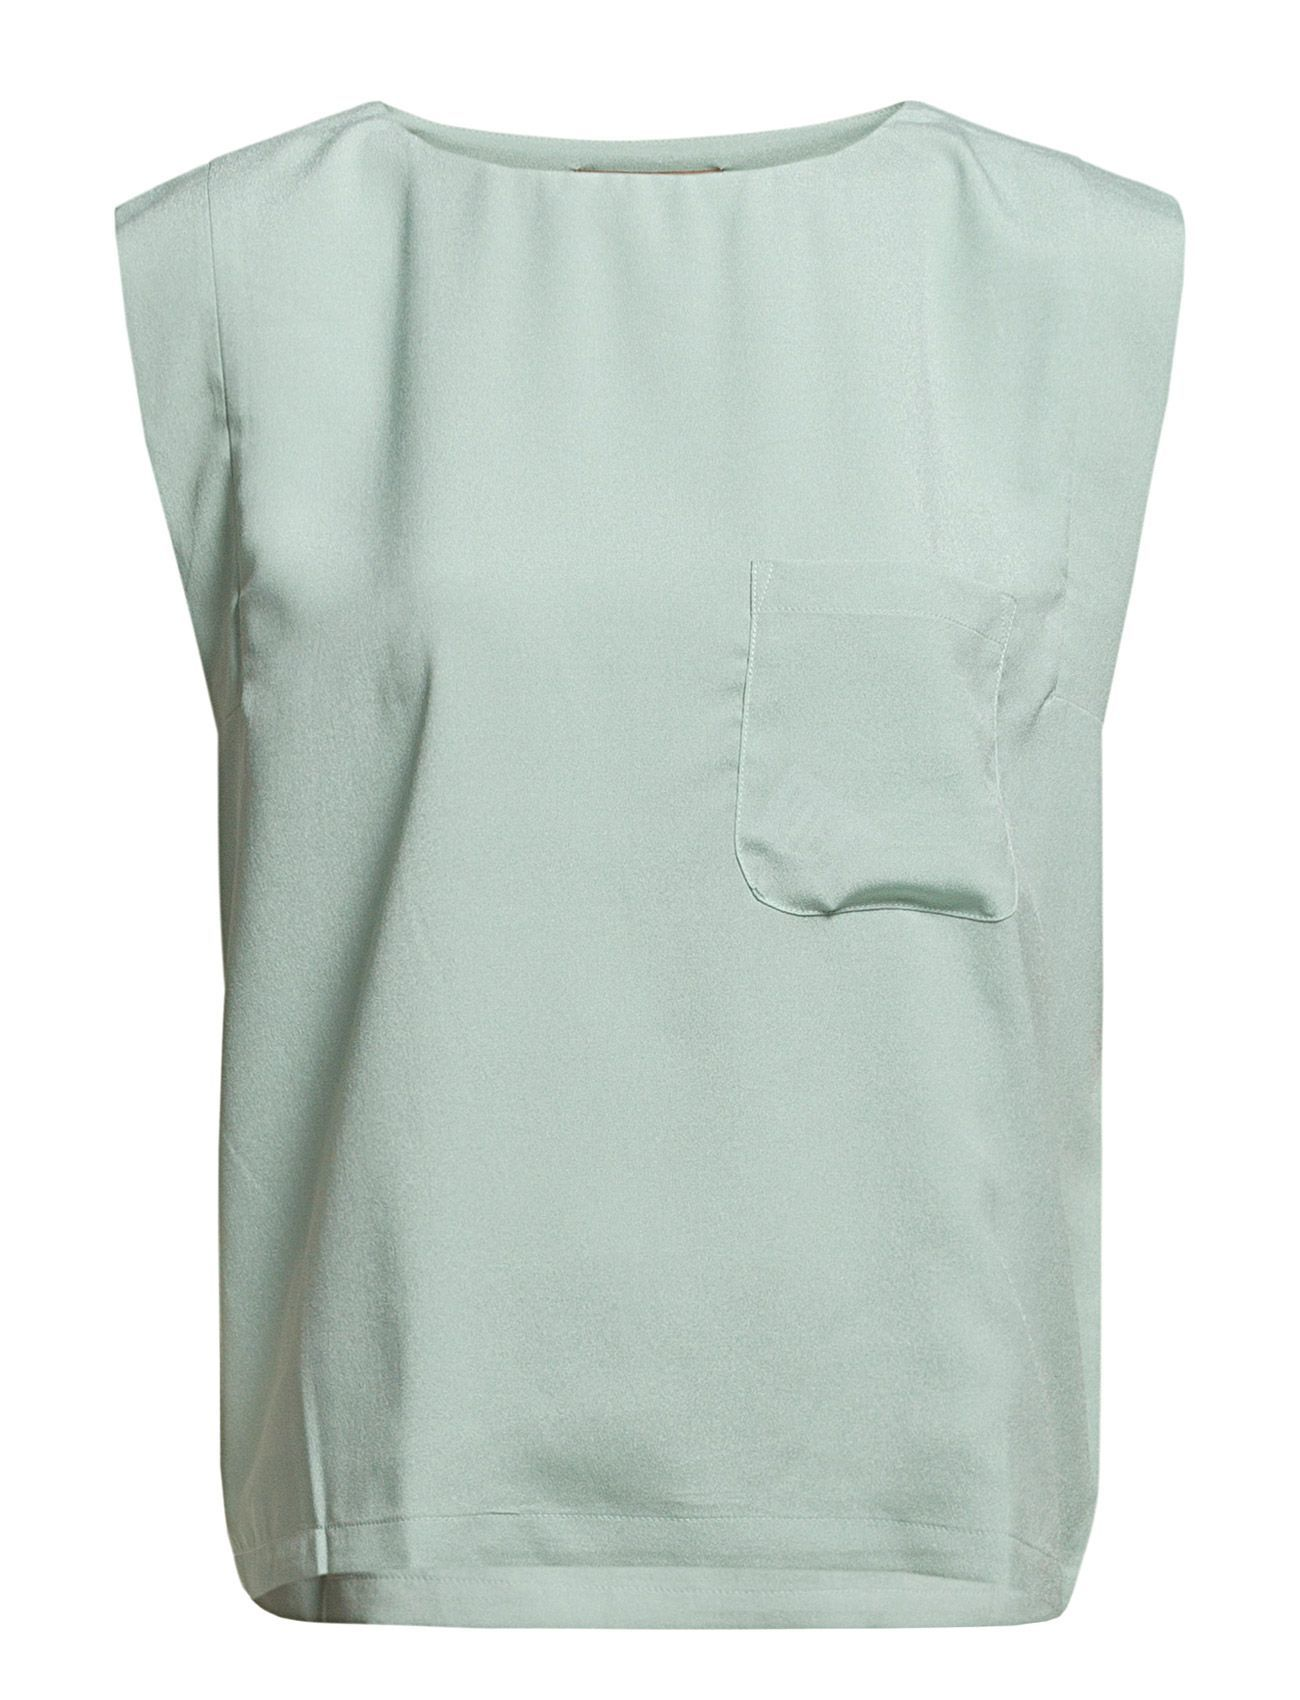 The Wardrobe Insuline Spring Top